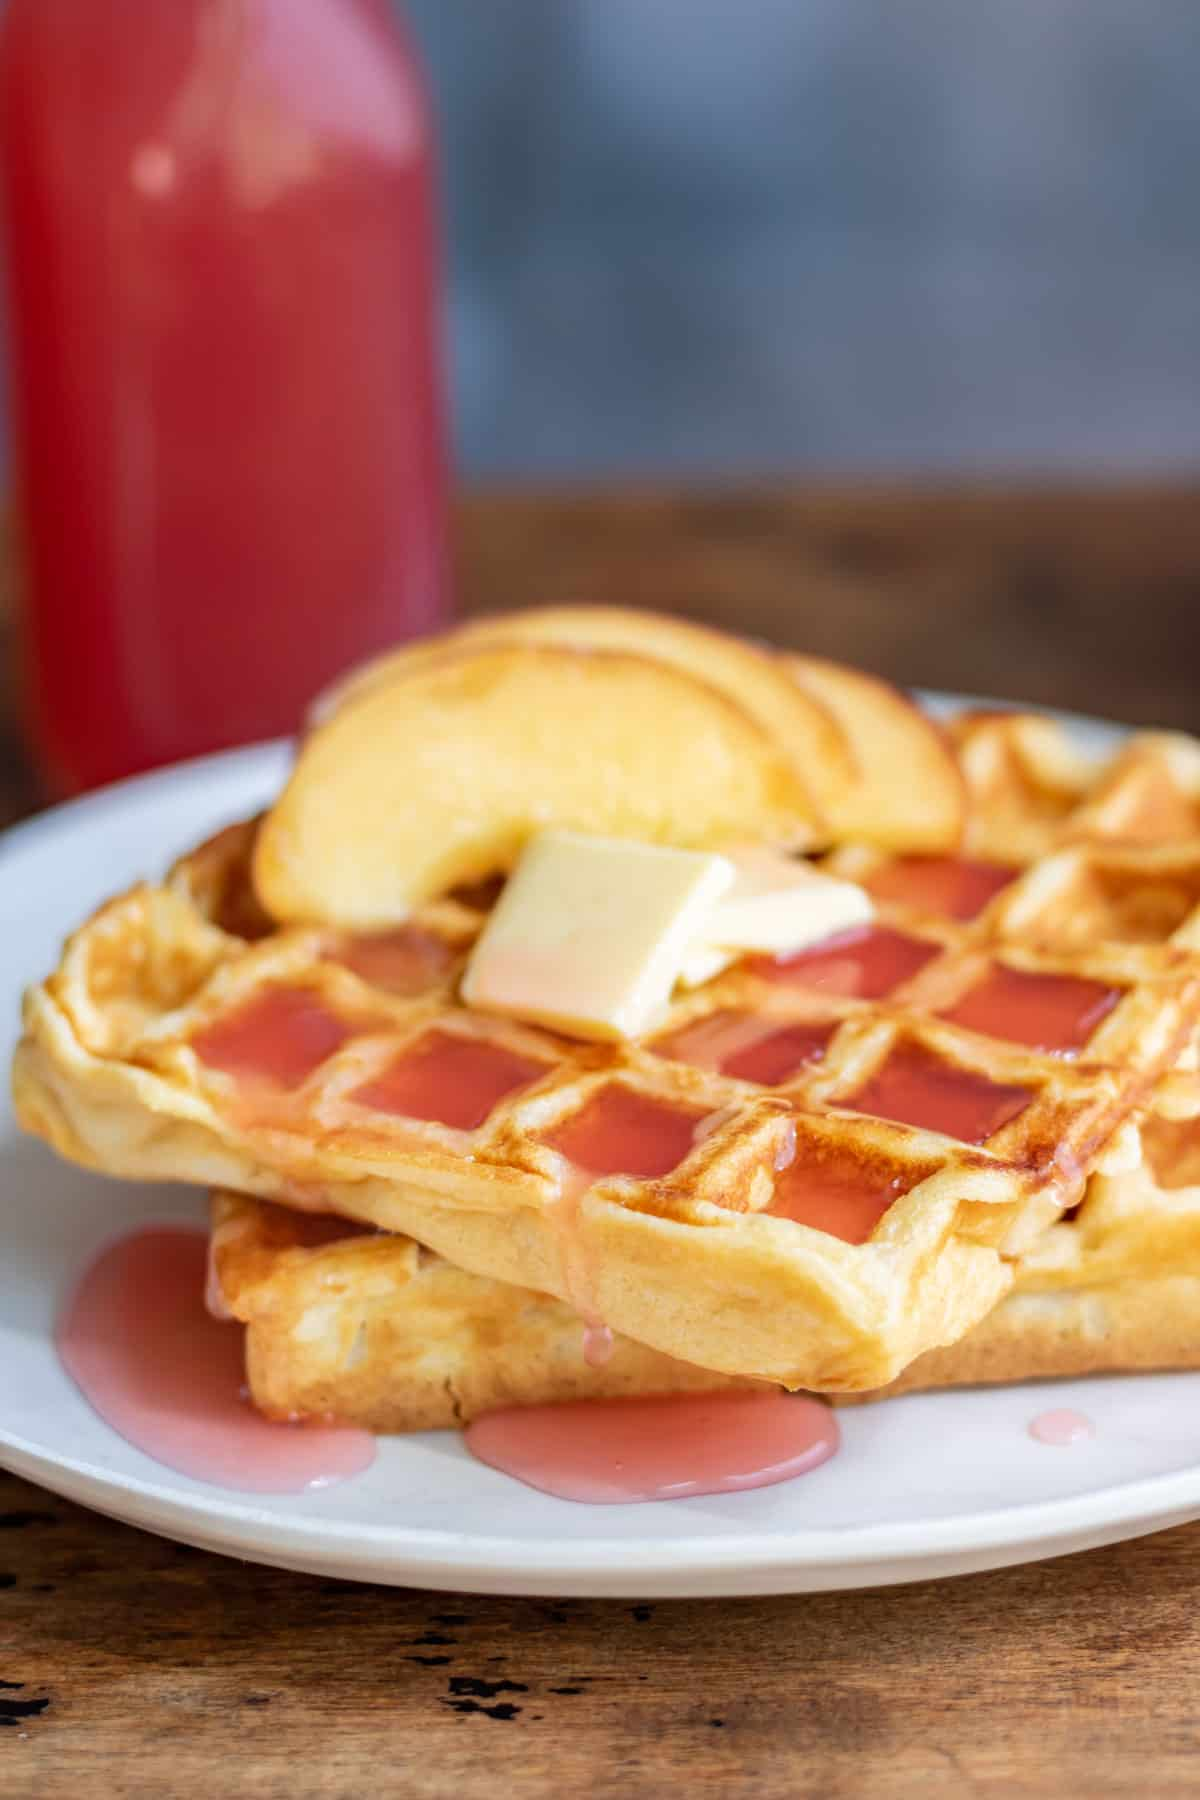 Waffles with butter, sliced peaches and peach syrup.